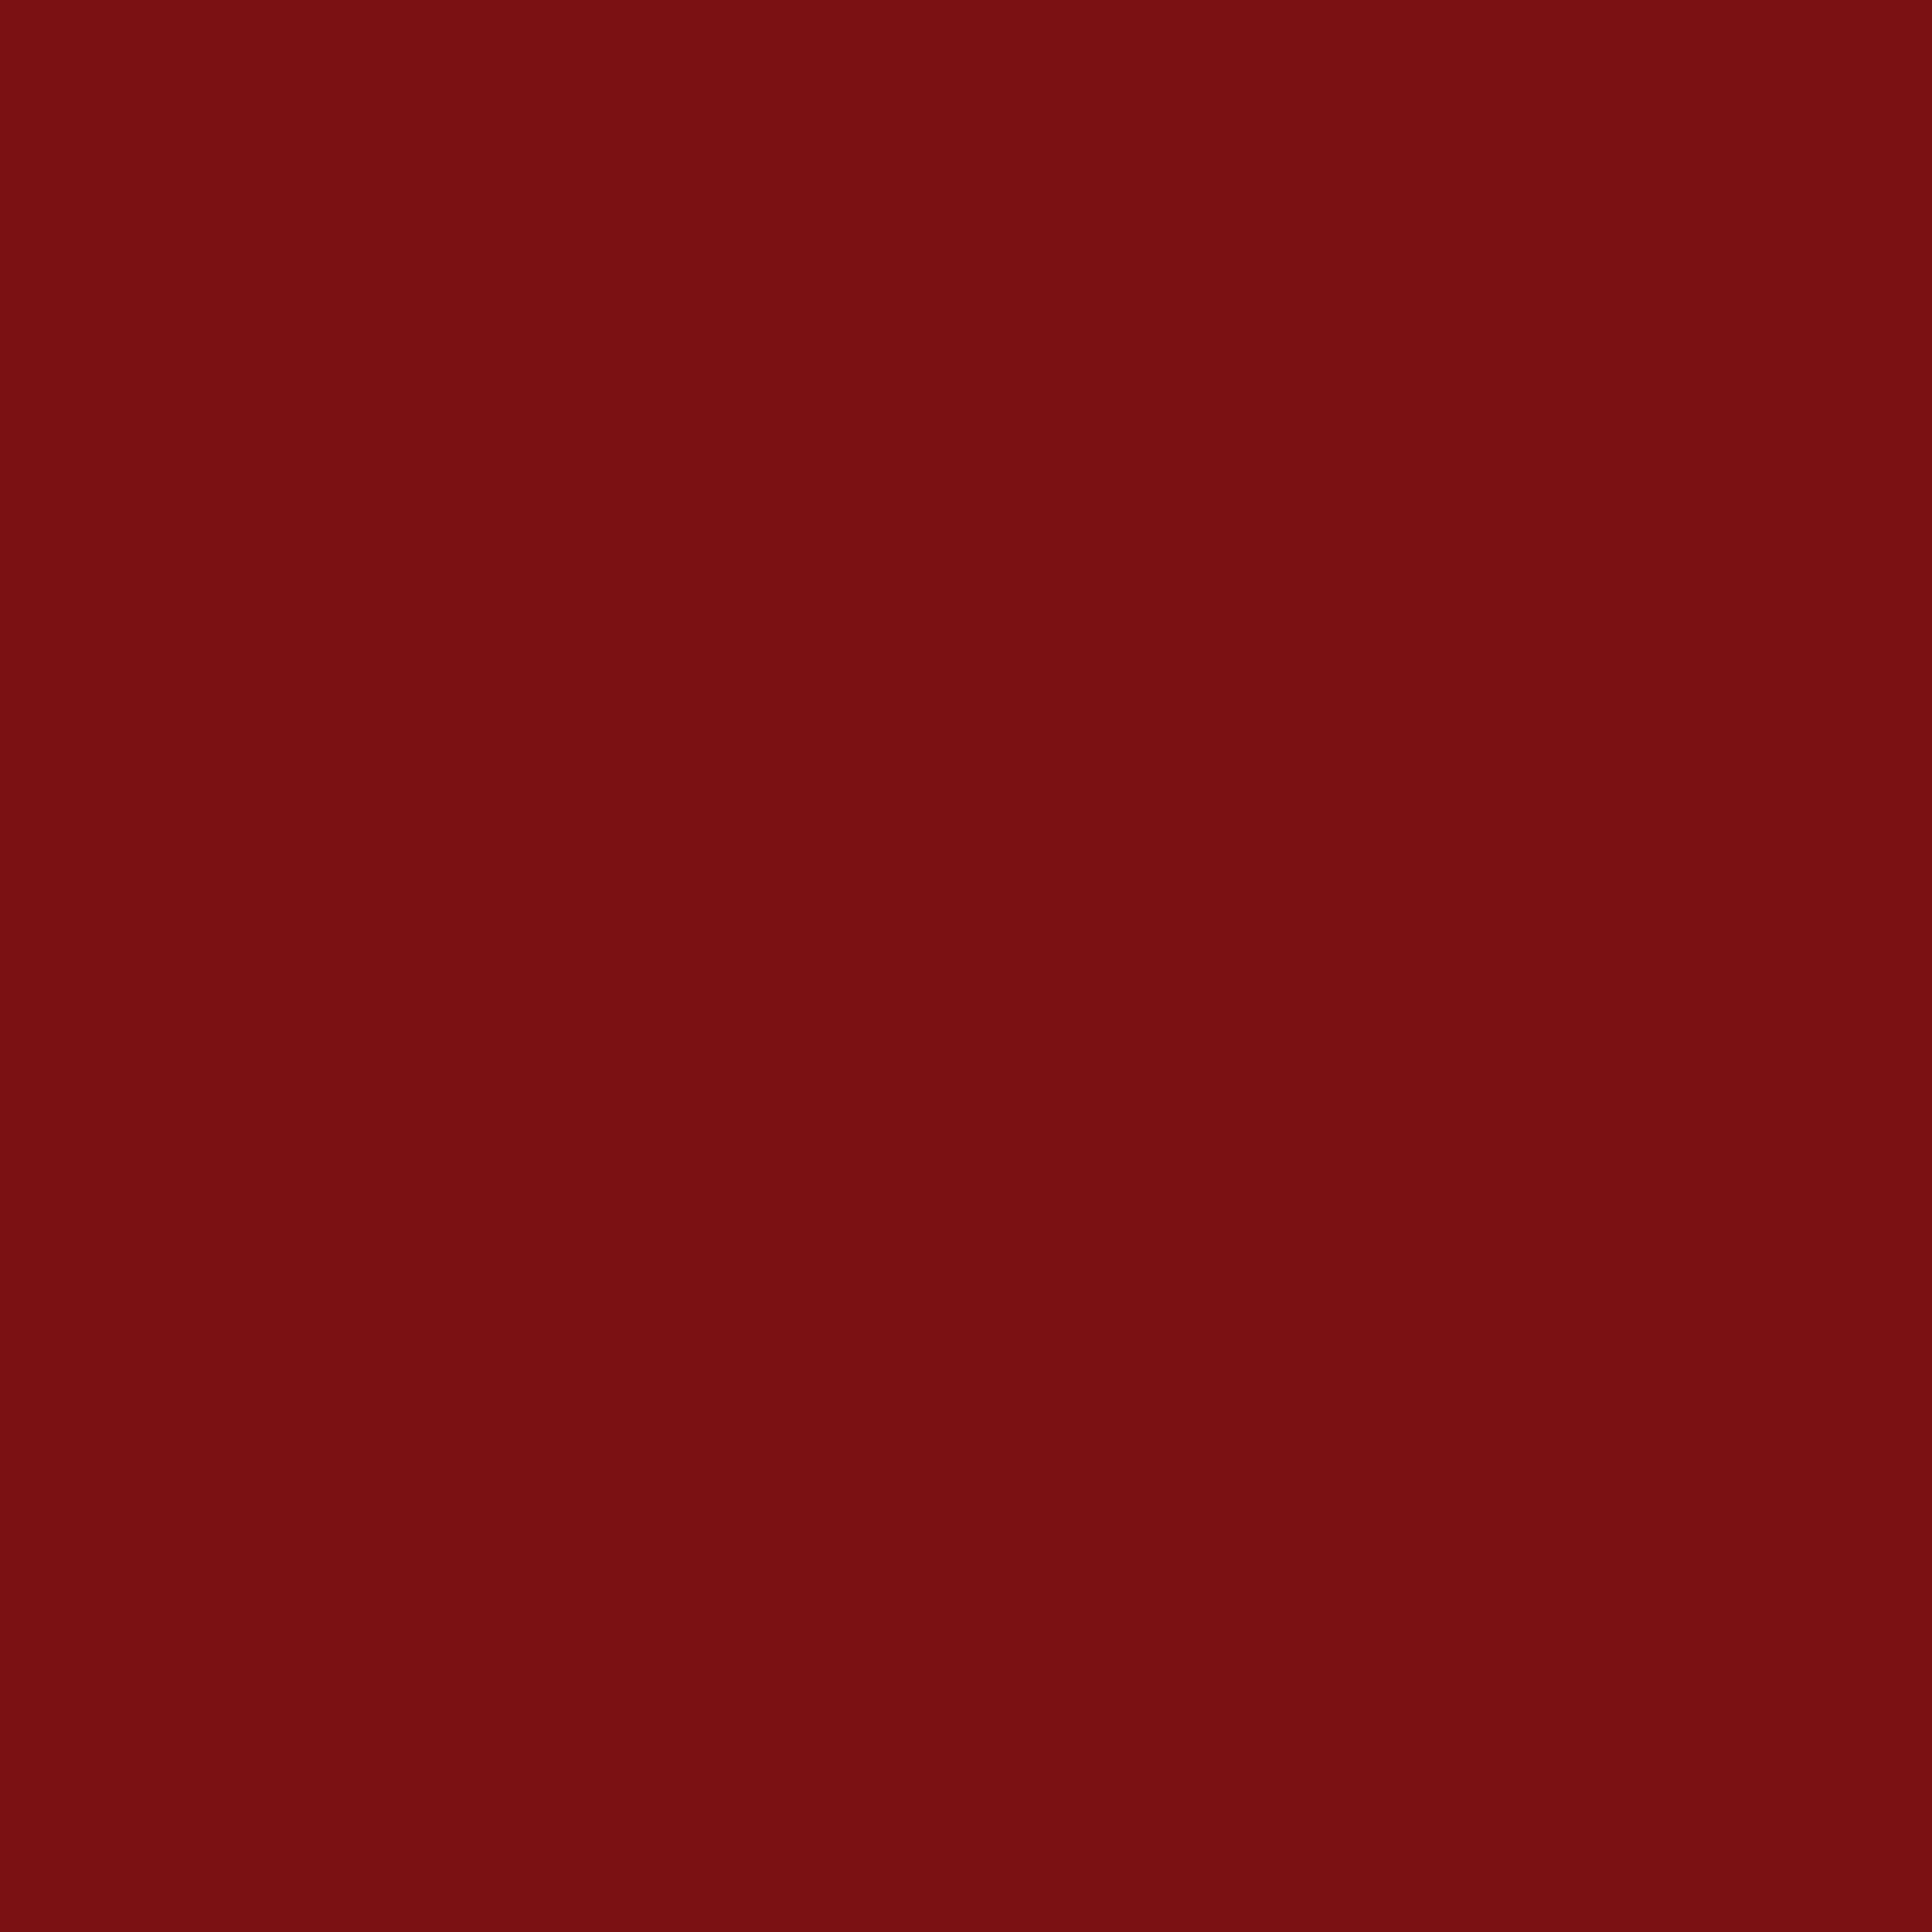 3600x3600 UP Maroon Solid Color Background